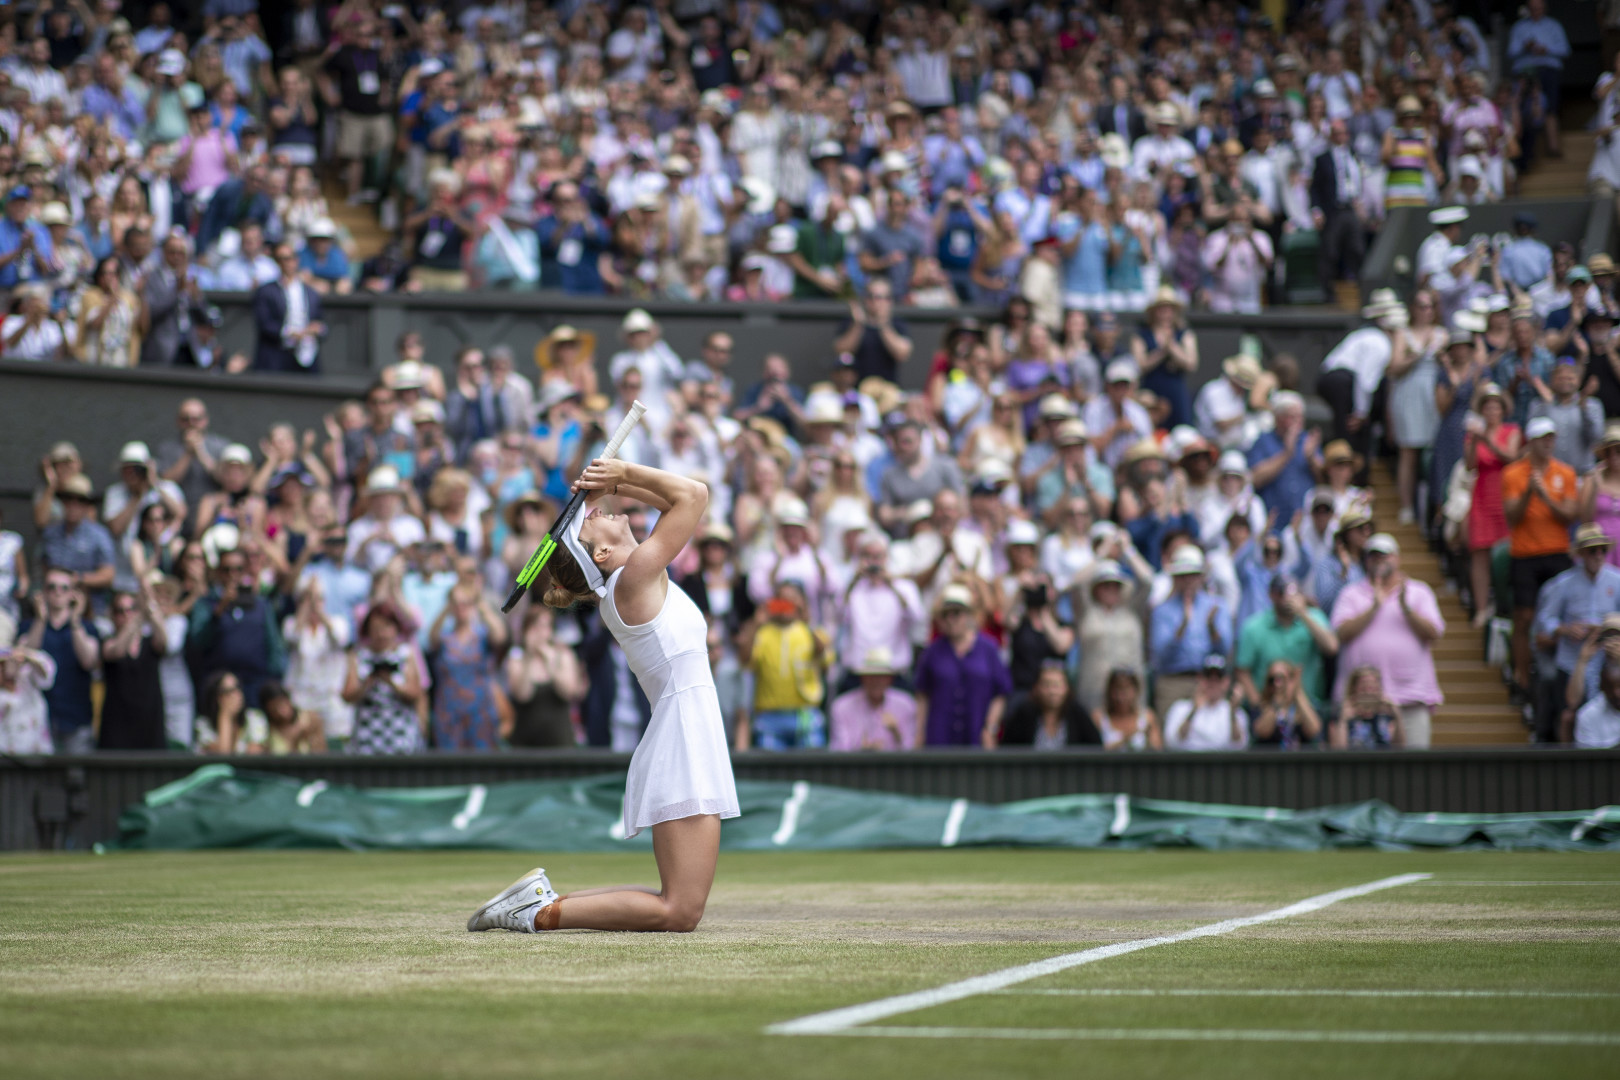 Simona Halep of Romania falls to her knees to celebrate her victory against Serena Williams of the United States during the Ladies Singles Final on Centre Court during the Wimbledon Lawn Tennis Championships (optimized)